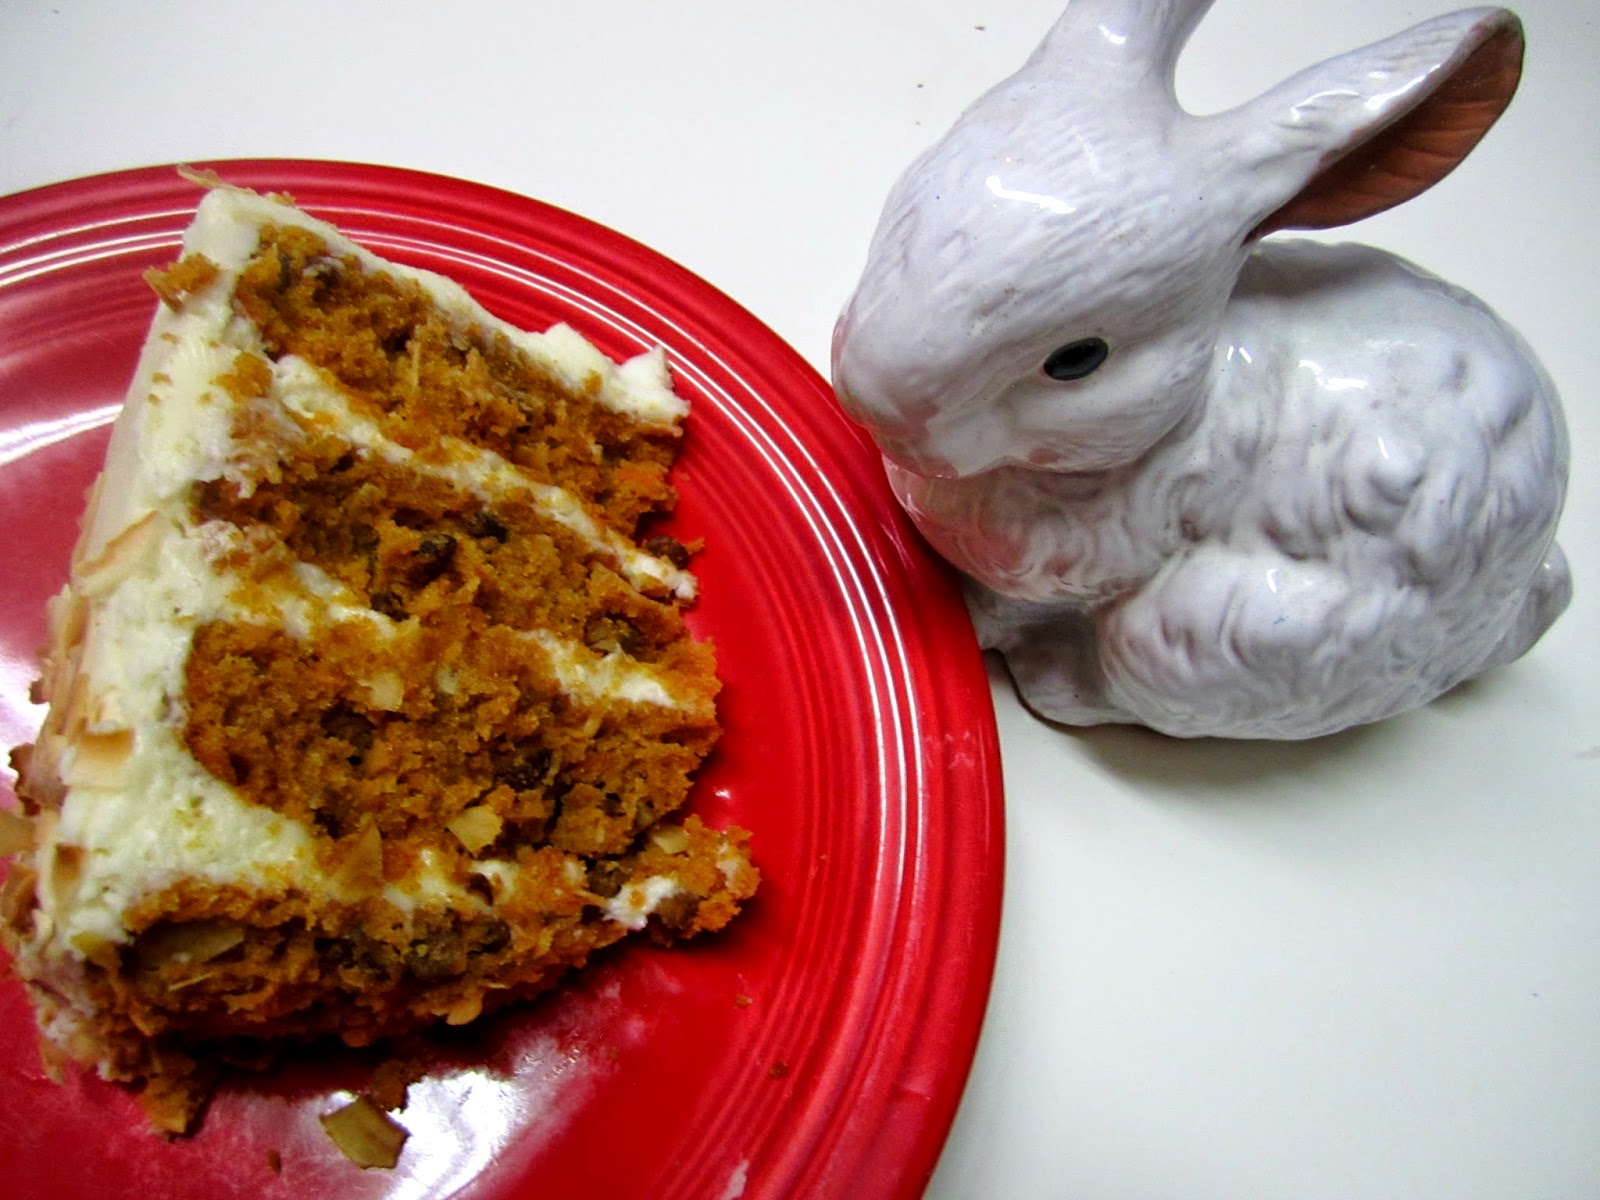 Carrot Cake from Palace Cakes, Portland, Oregon